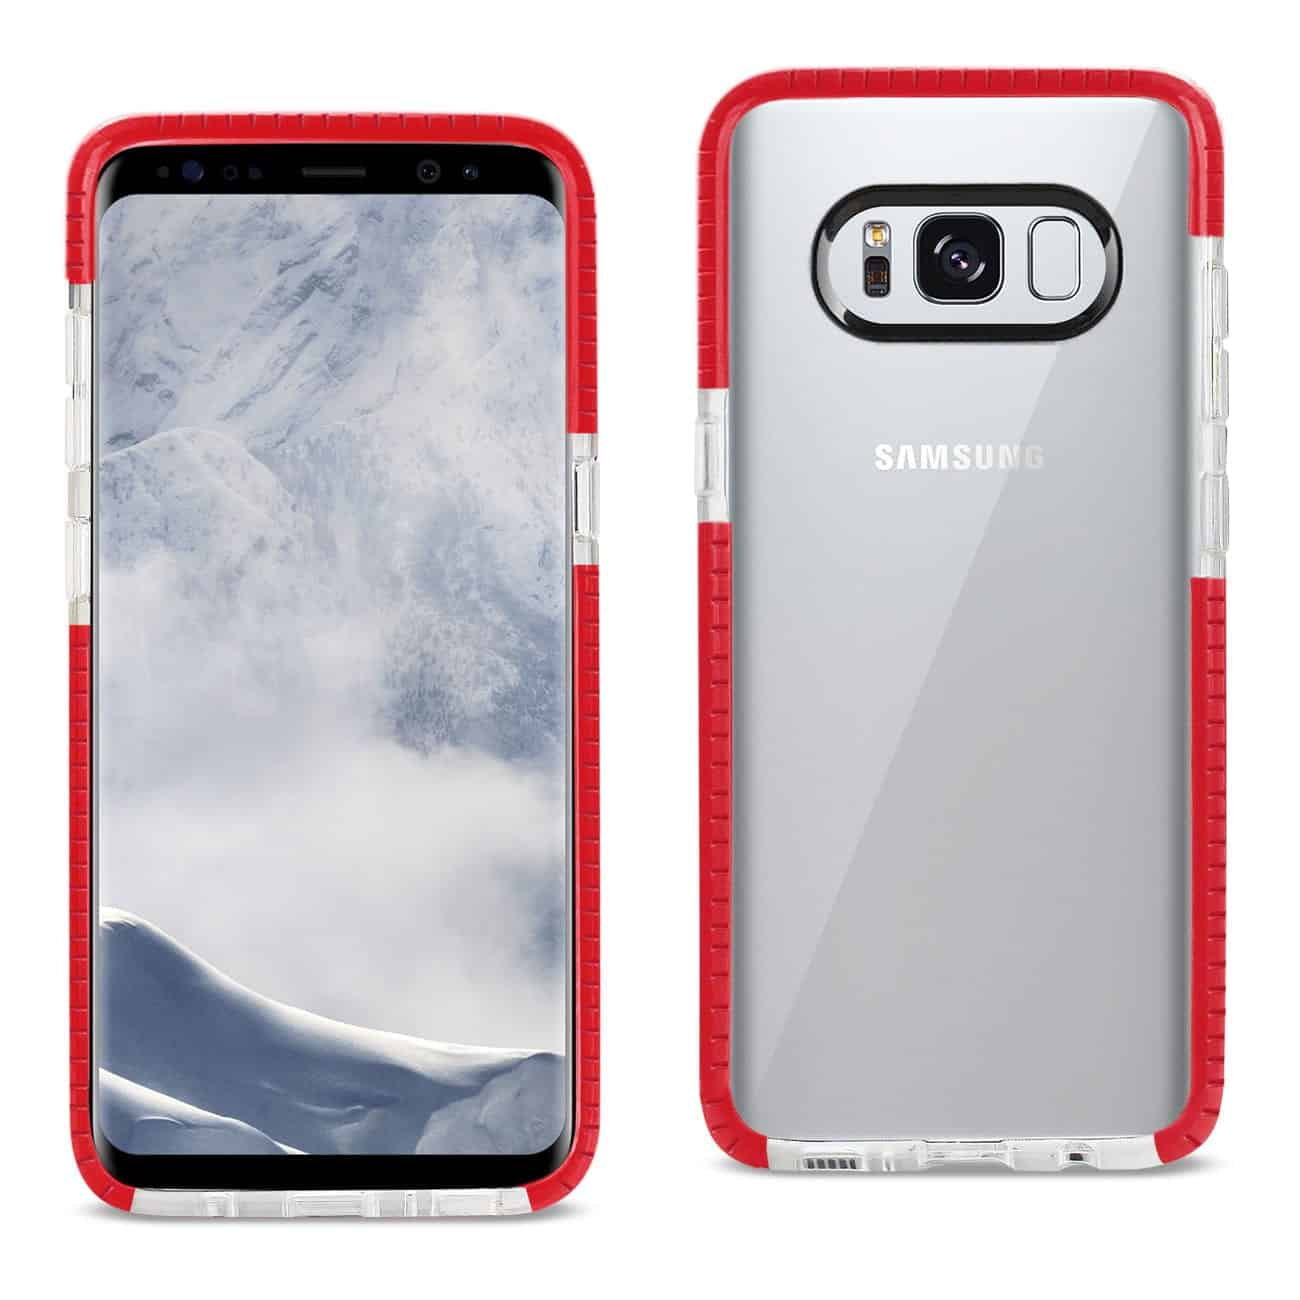 SAMSUNG GALAXY S8 EDGE/ S8 PLUS SOFT TRANSPARENT TPU CASE IN CLEAR RED